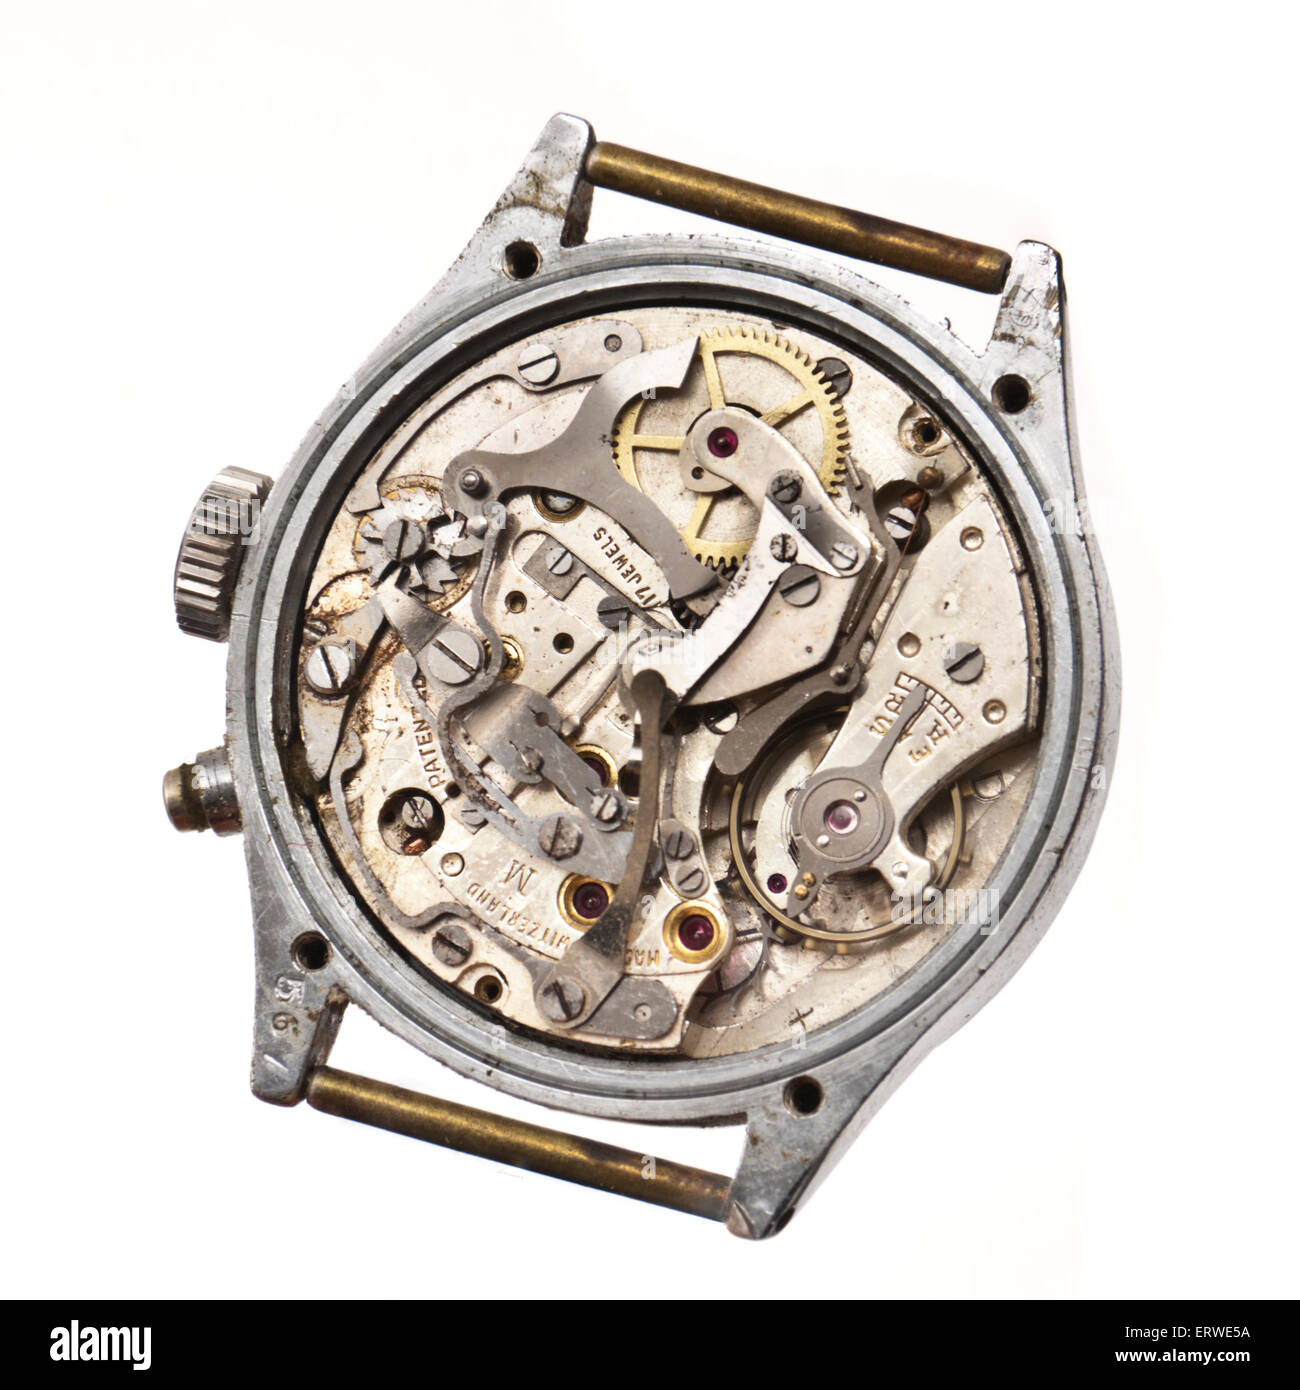 Vintage 1940's Swiss chronograph wristwatch by Pierce. - Stock Image